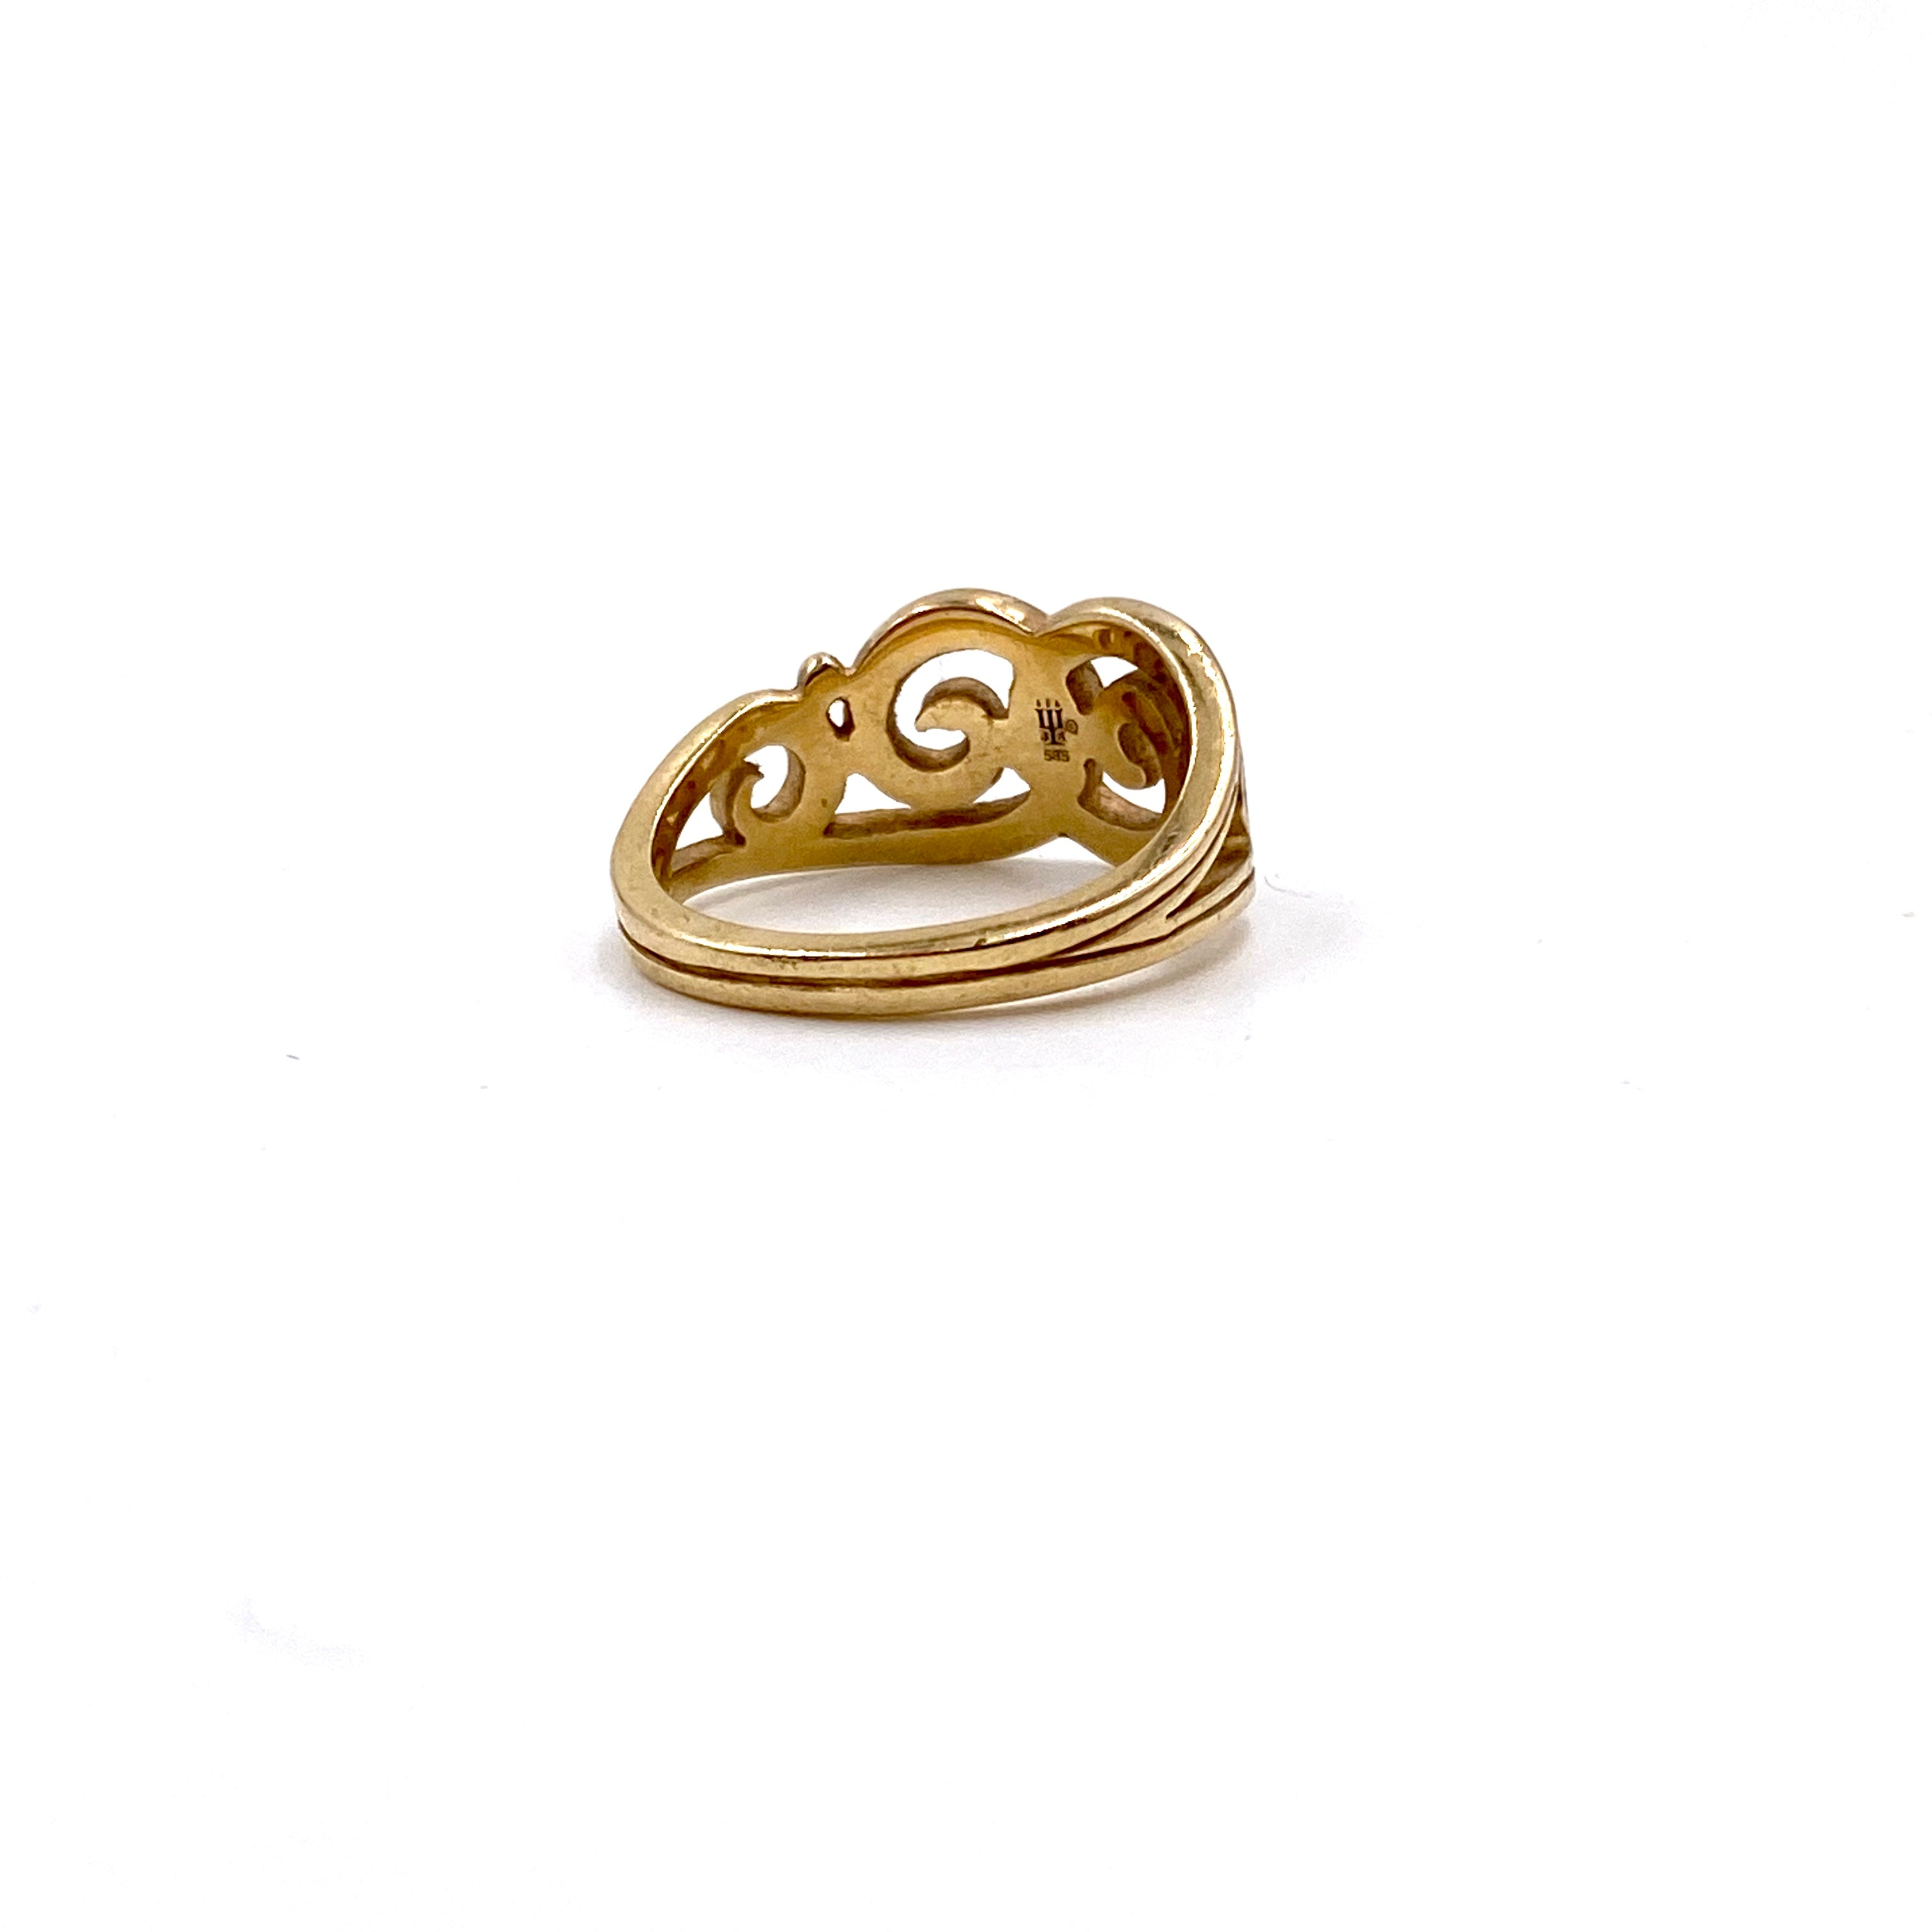 James Avery Retired Gentle Wave Beach Life Ring in 14K Yellow Gold